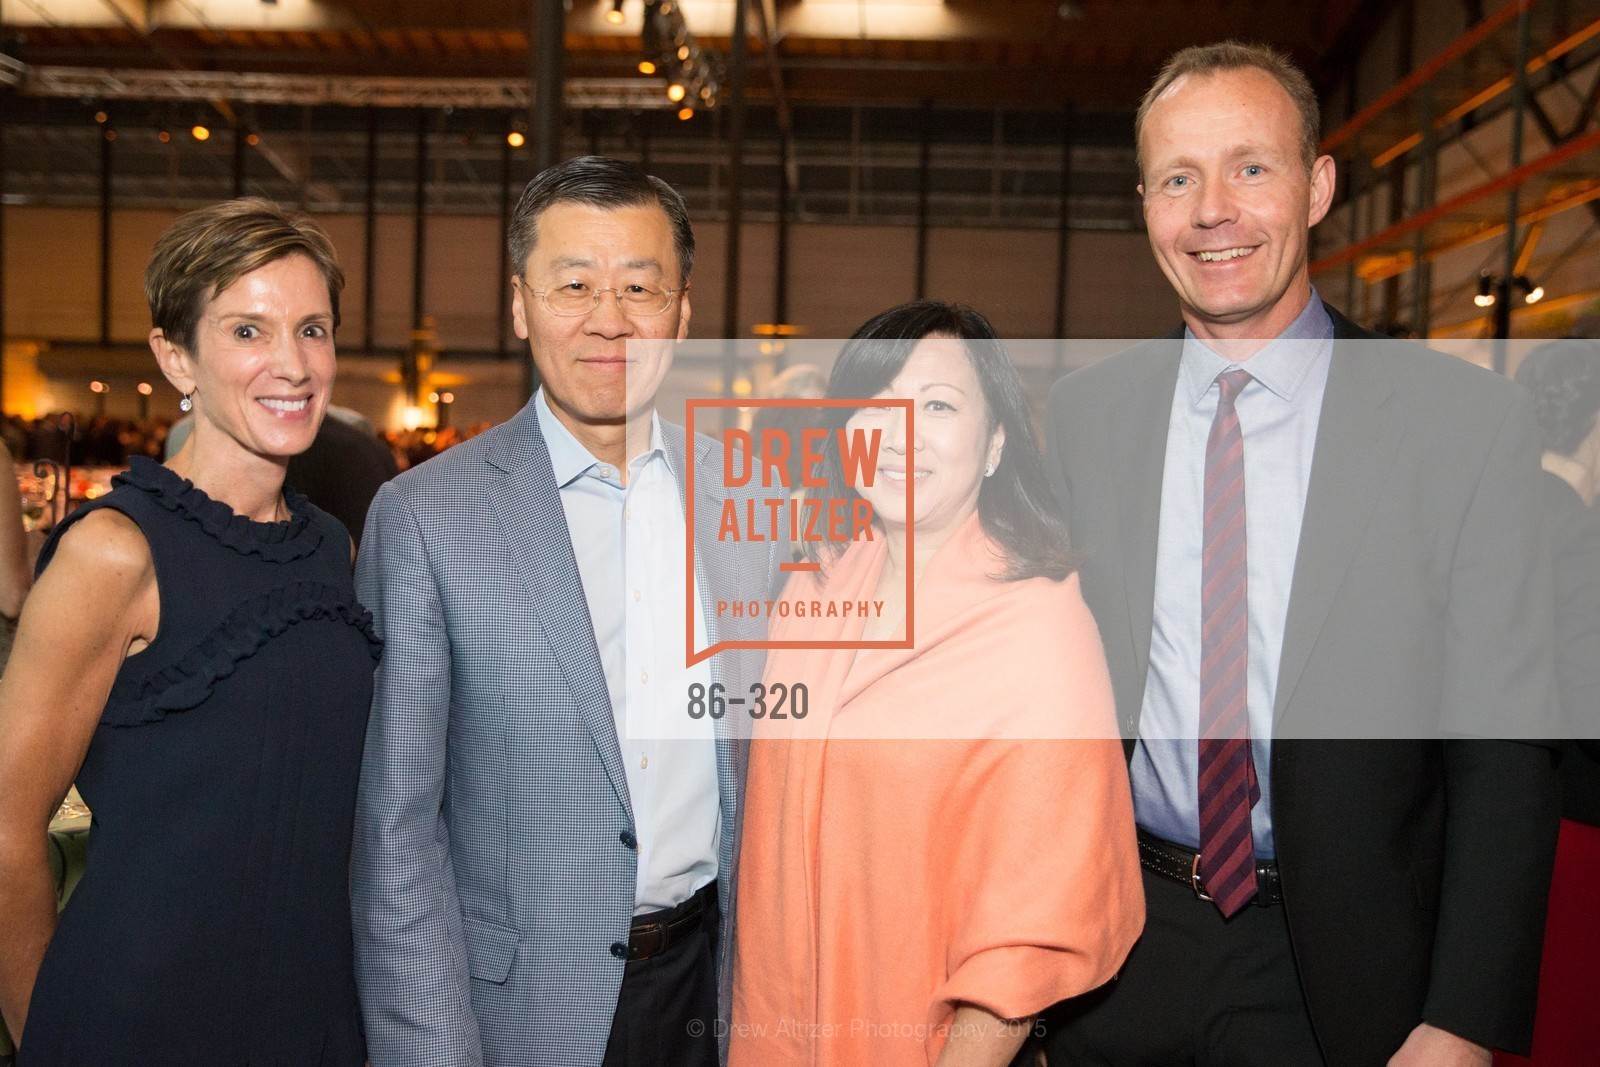 Hyun Park, Catherine Park, Curt Sigfstead, SF - Marin Food Bank Presents ONE BIG TABLE, SF- Marin Food Bank. 900 Pennsylvania Ave, September 26th, 2015,Drew Altizer, Drew Altizer Photography, full-service agency, private events, San Francisco photographer, photographer california